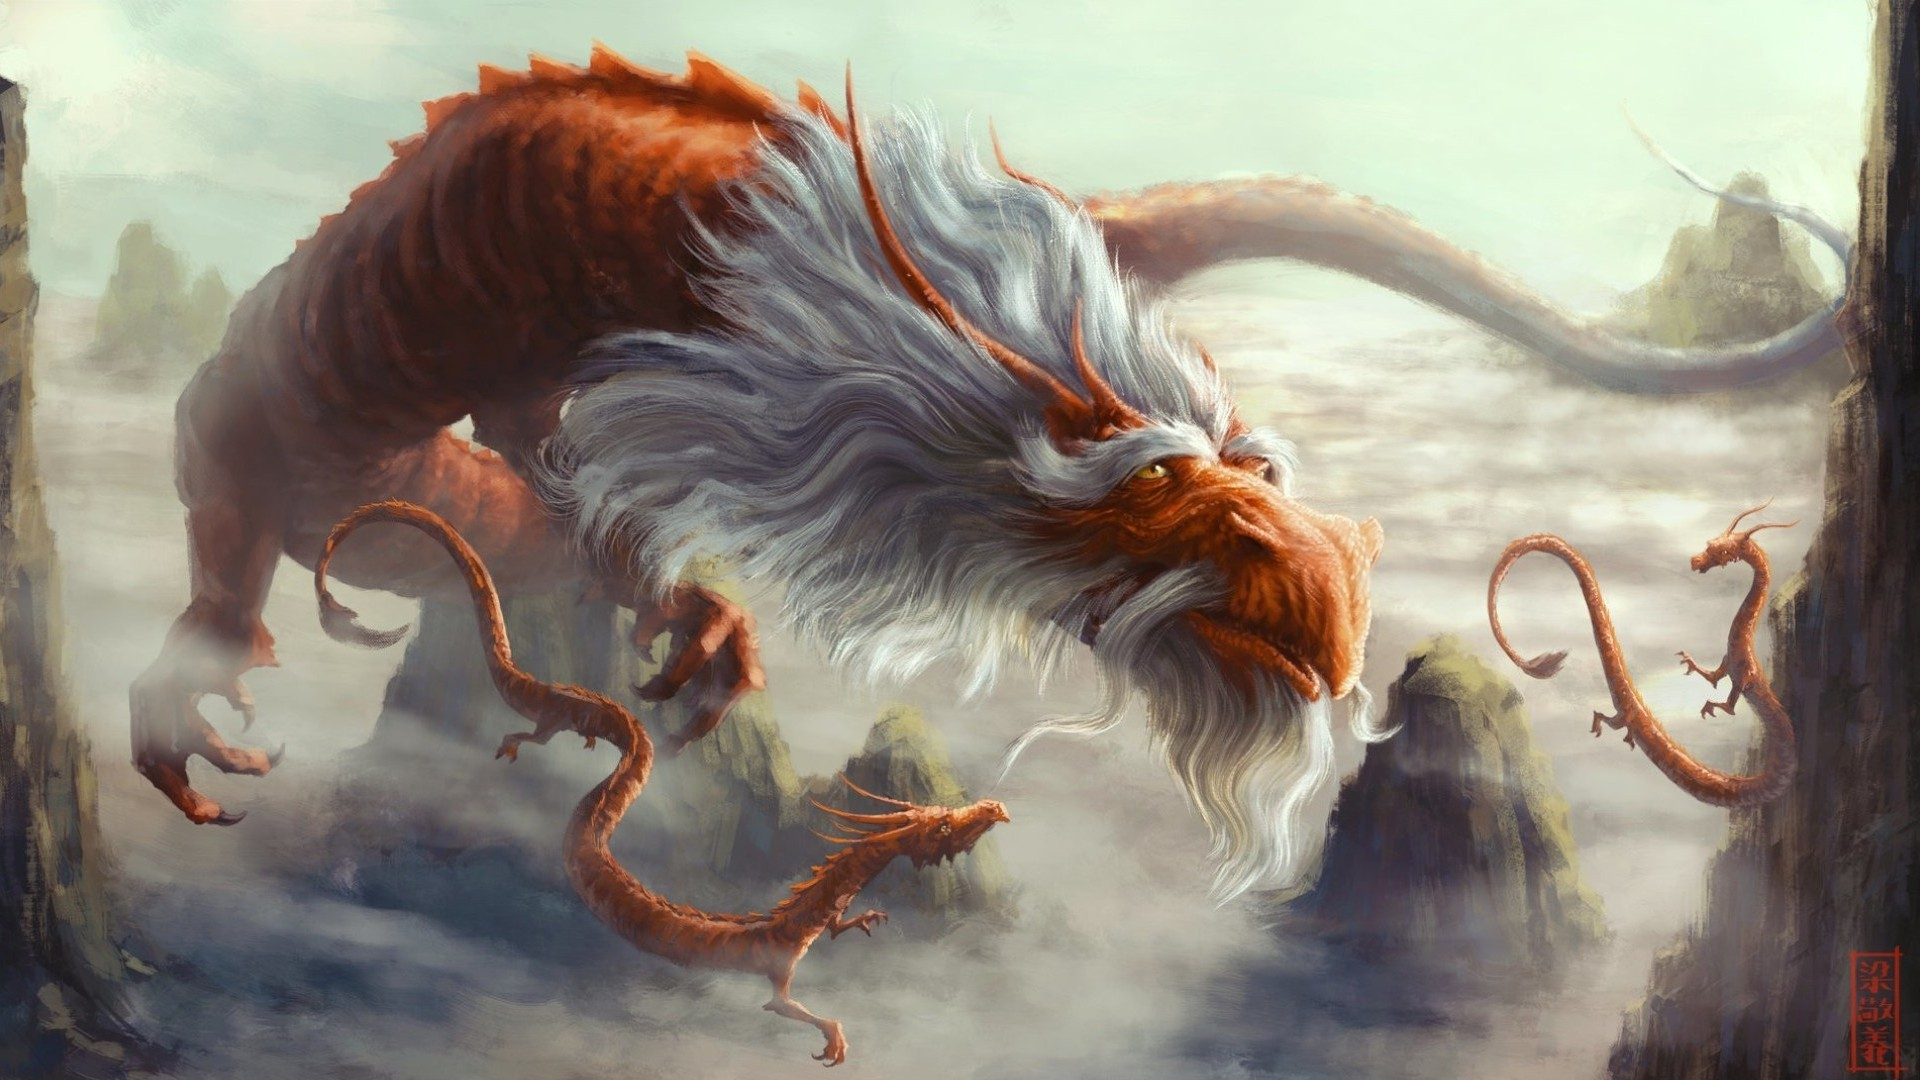 Chinese dragon wallpaper wallpapertag - Dragon backgrounds 1920x1080 ...